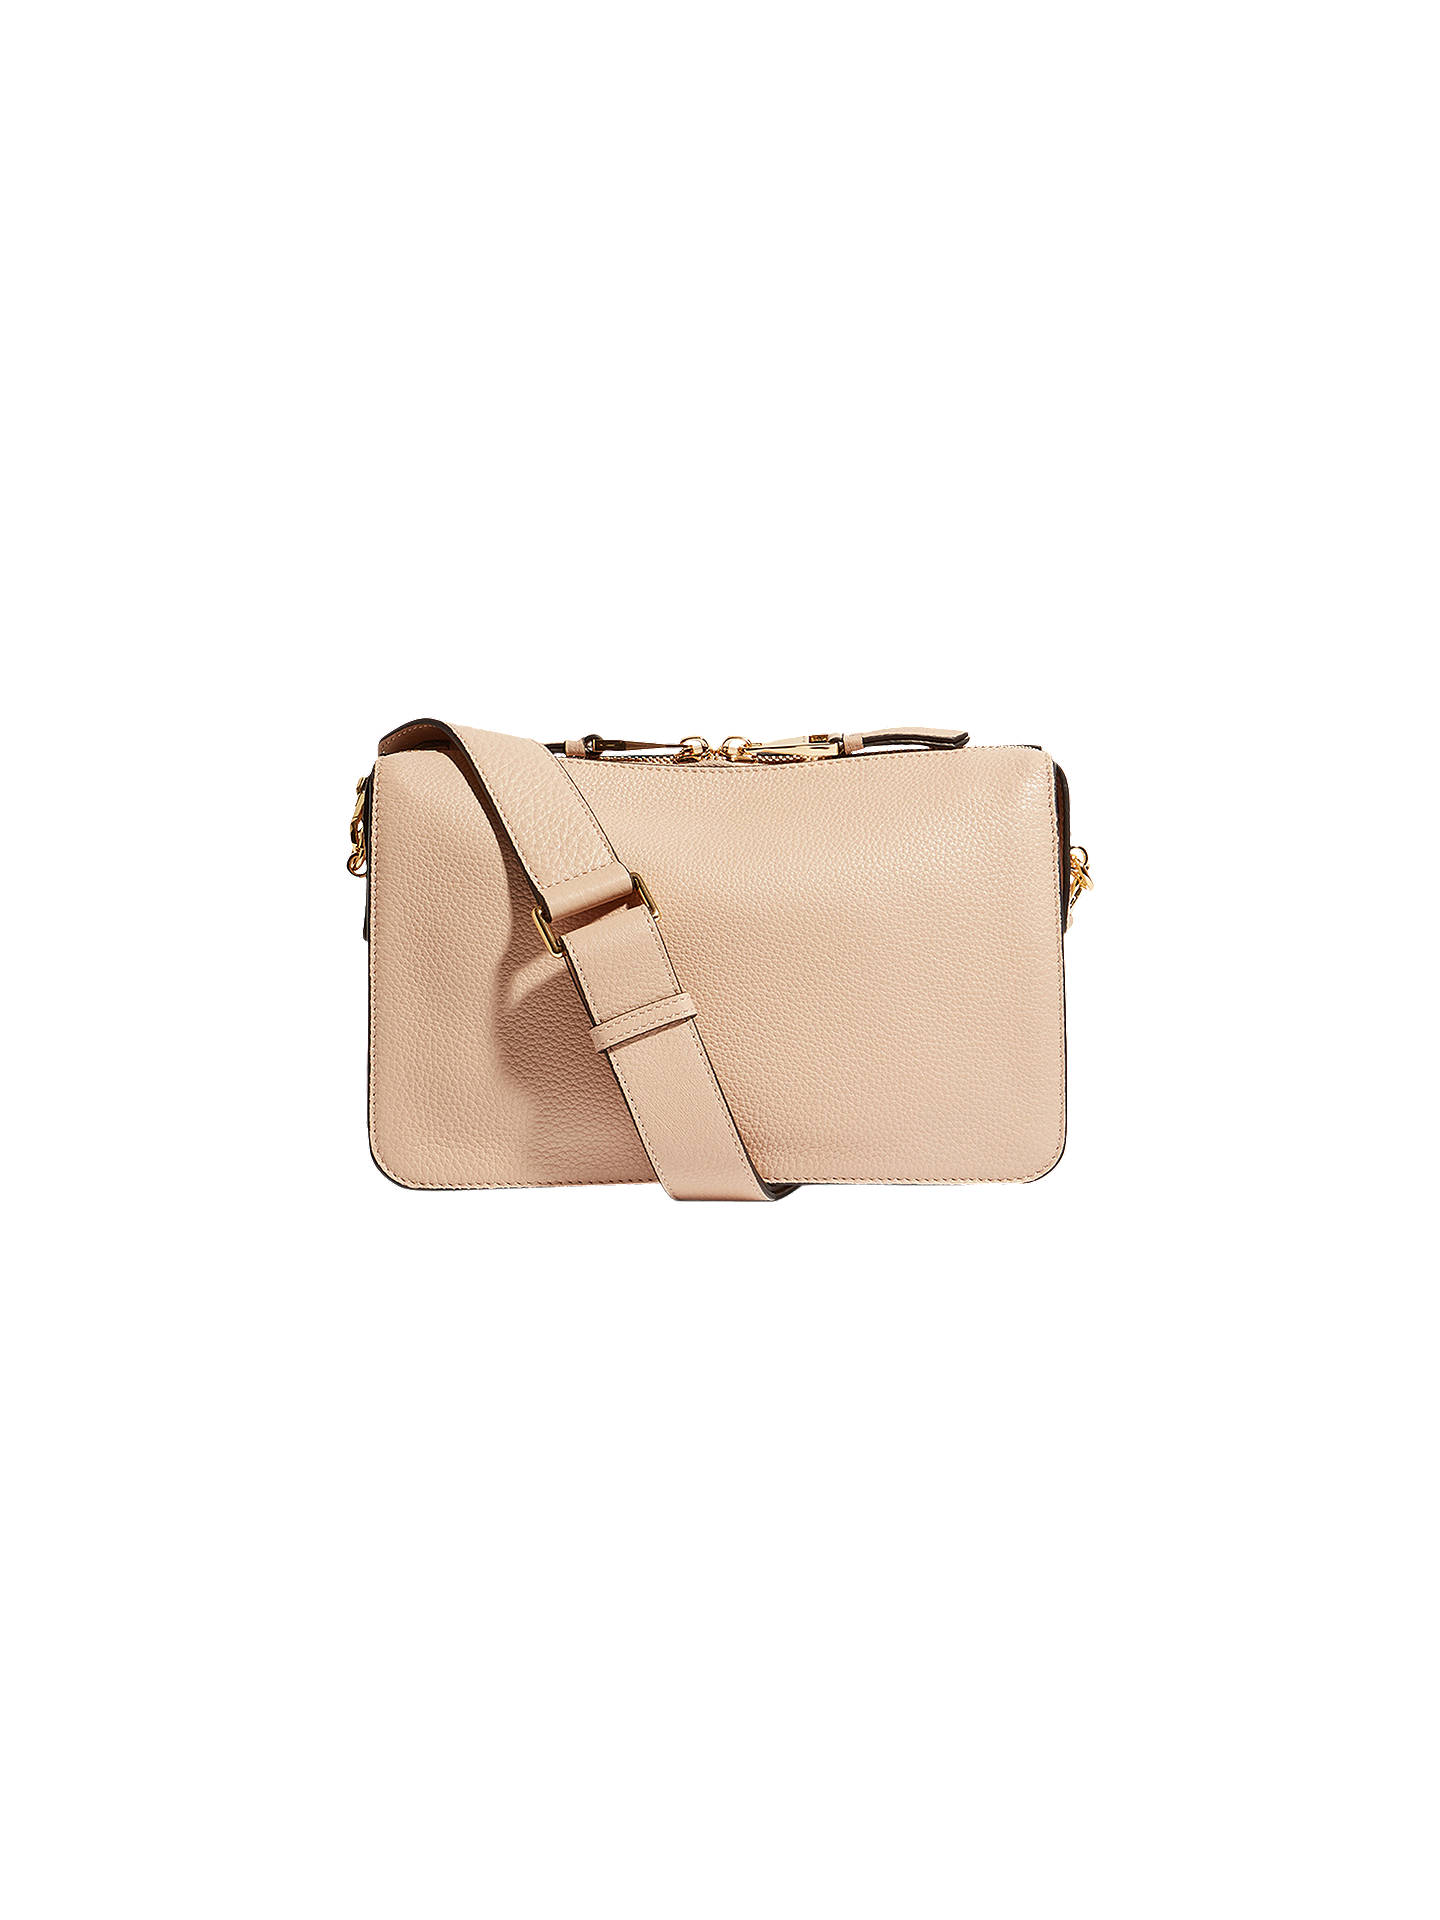 cc4f5421c4 Buy Karen Millen Compartment Leather Shoulder Bag, Neutral Online at  johnlewis.com ...